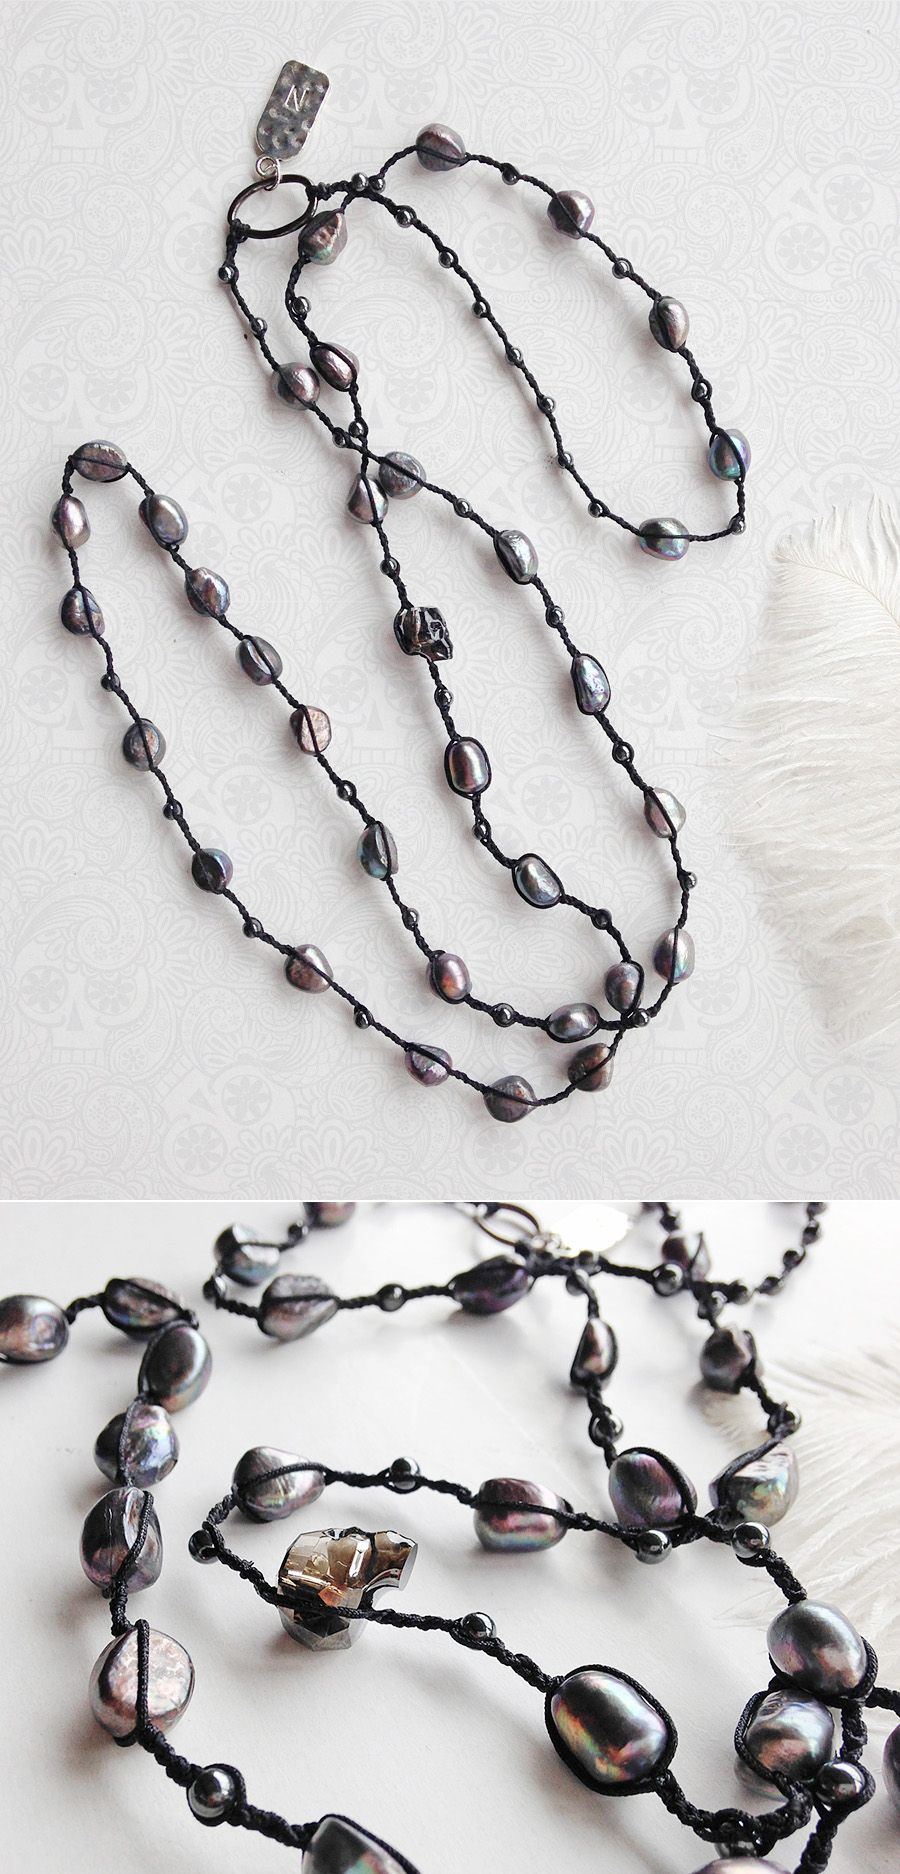 necklaces pearl beaded pearls irregularly bead long black braided pin necklace shaped